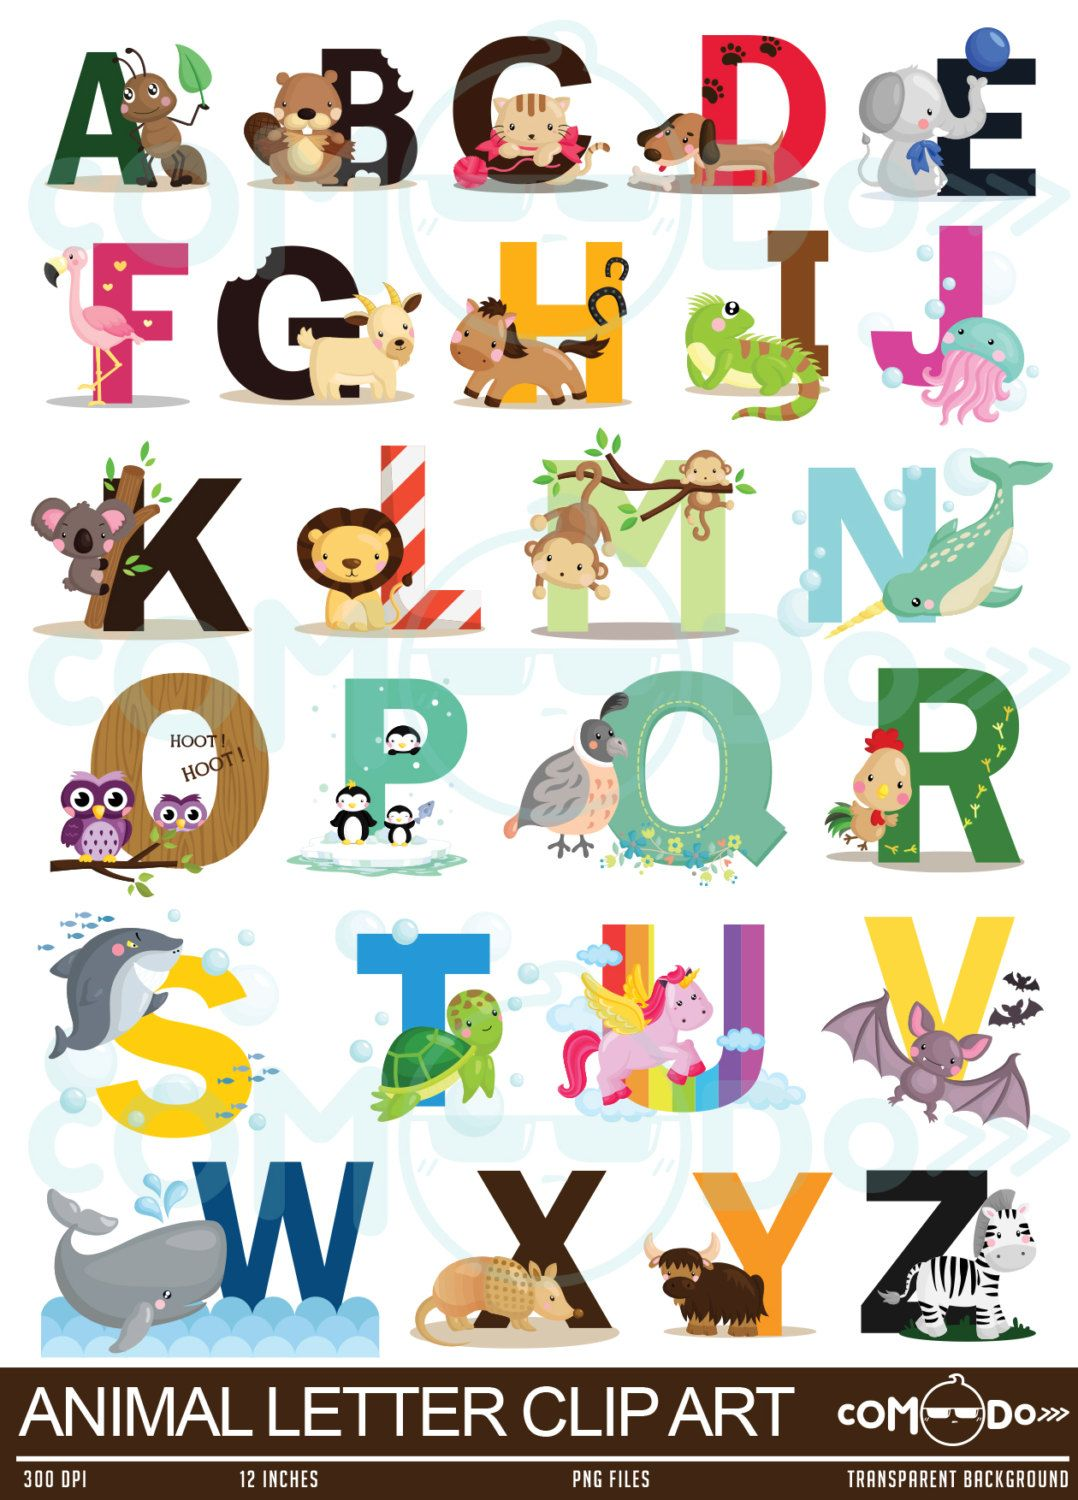 Letters clipart. Animal letter cute fun